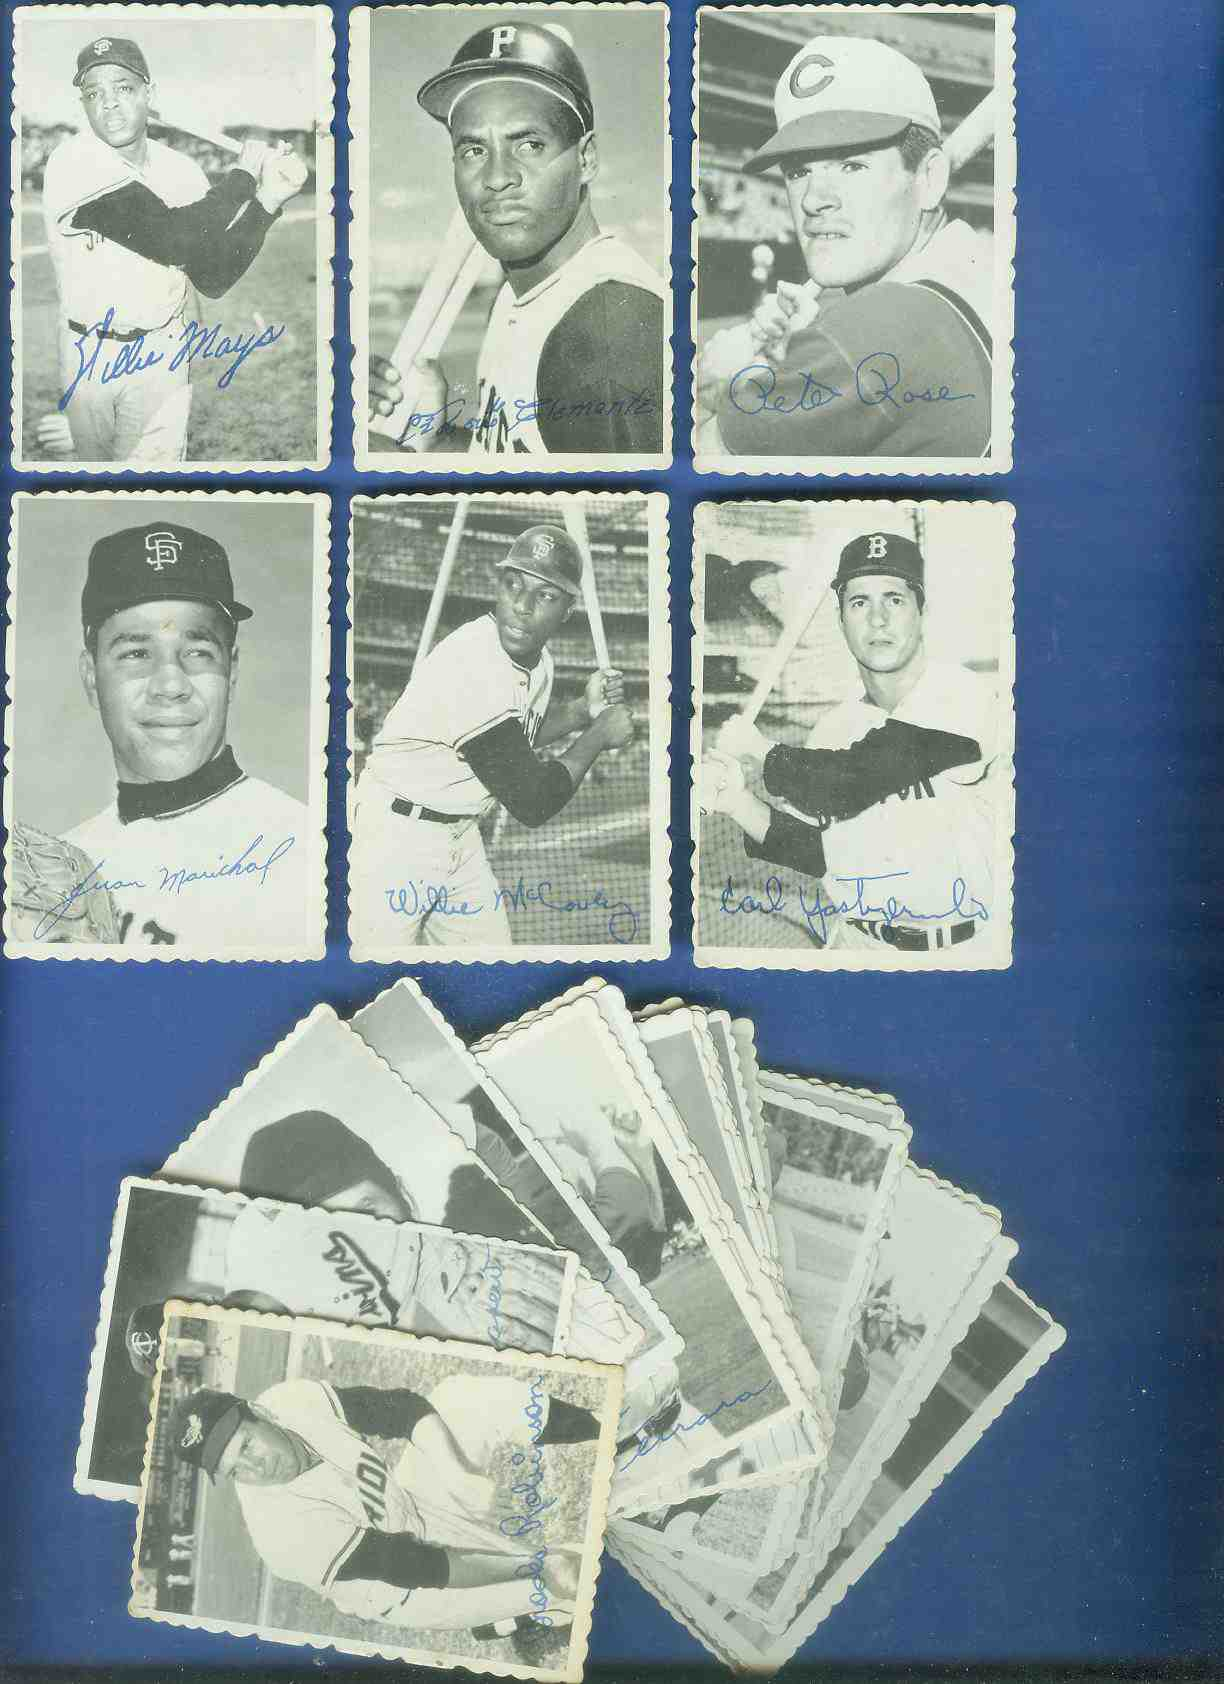 1969 Topps DECKLE EDGE COMPLETE SET - 33 Die-Cut inserts packed with STARS Baseball cards value